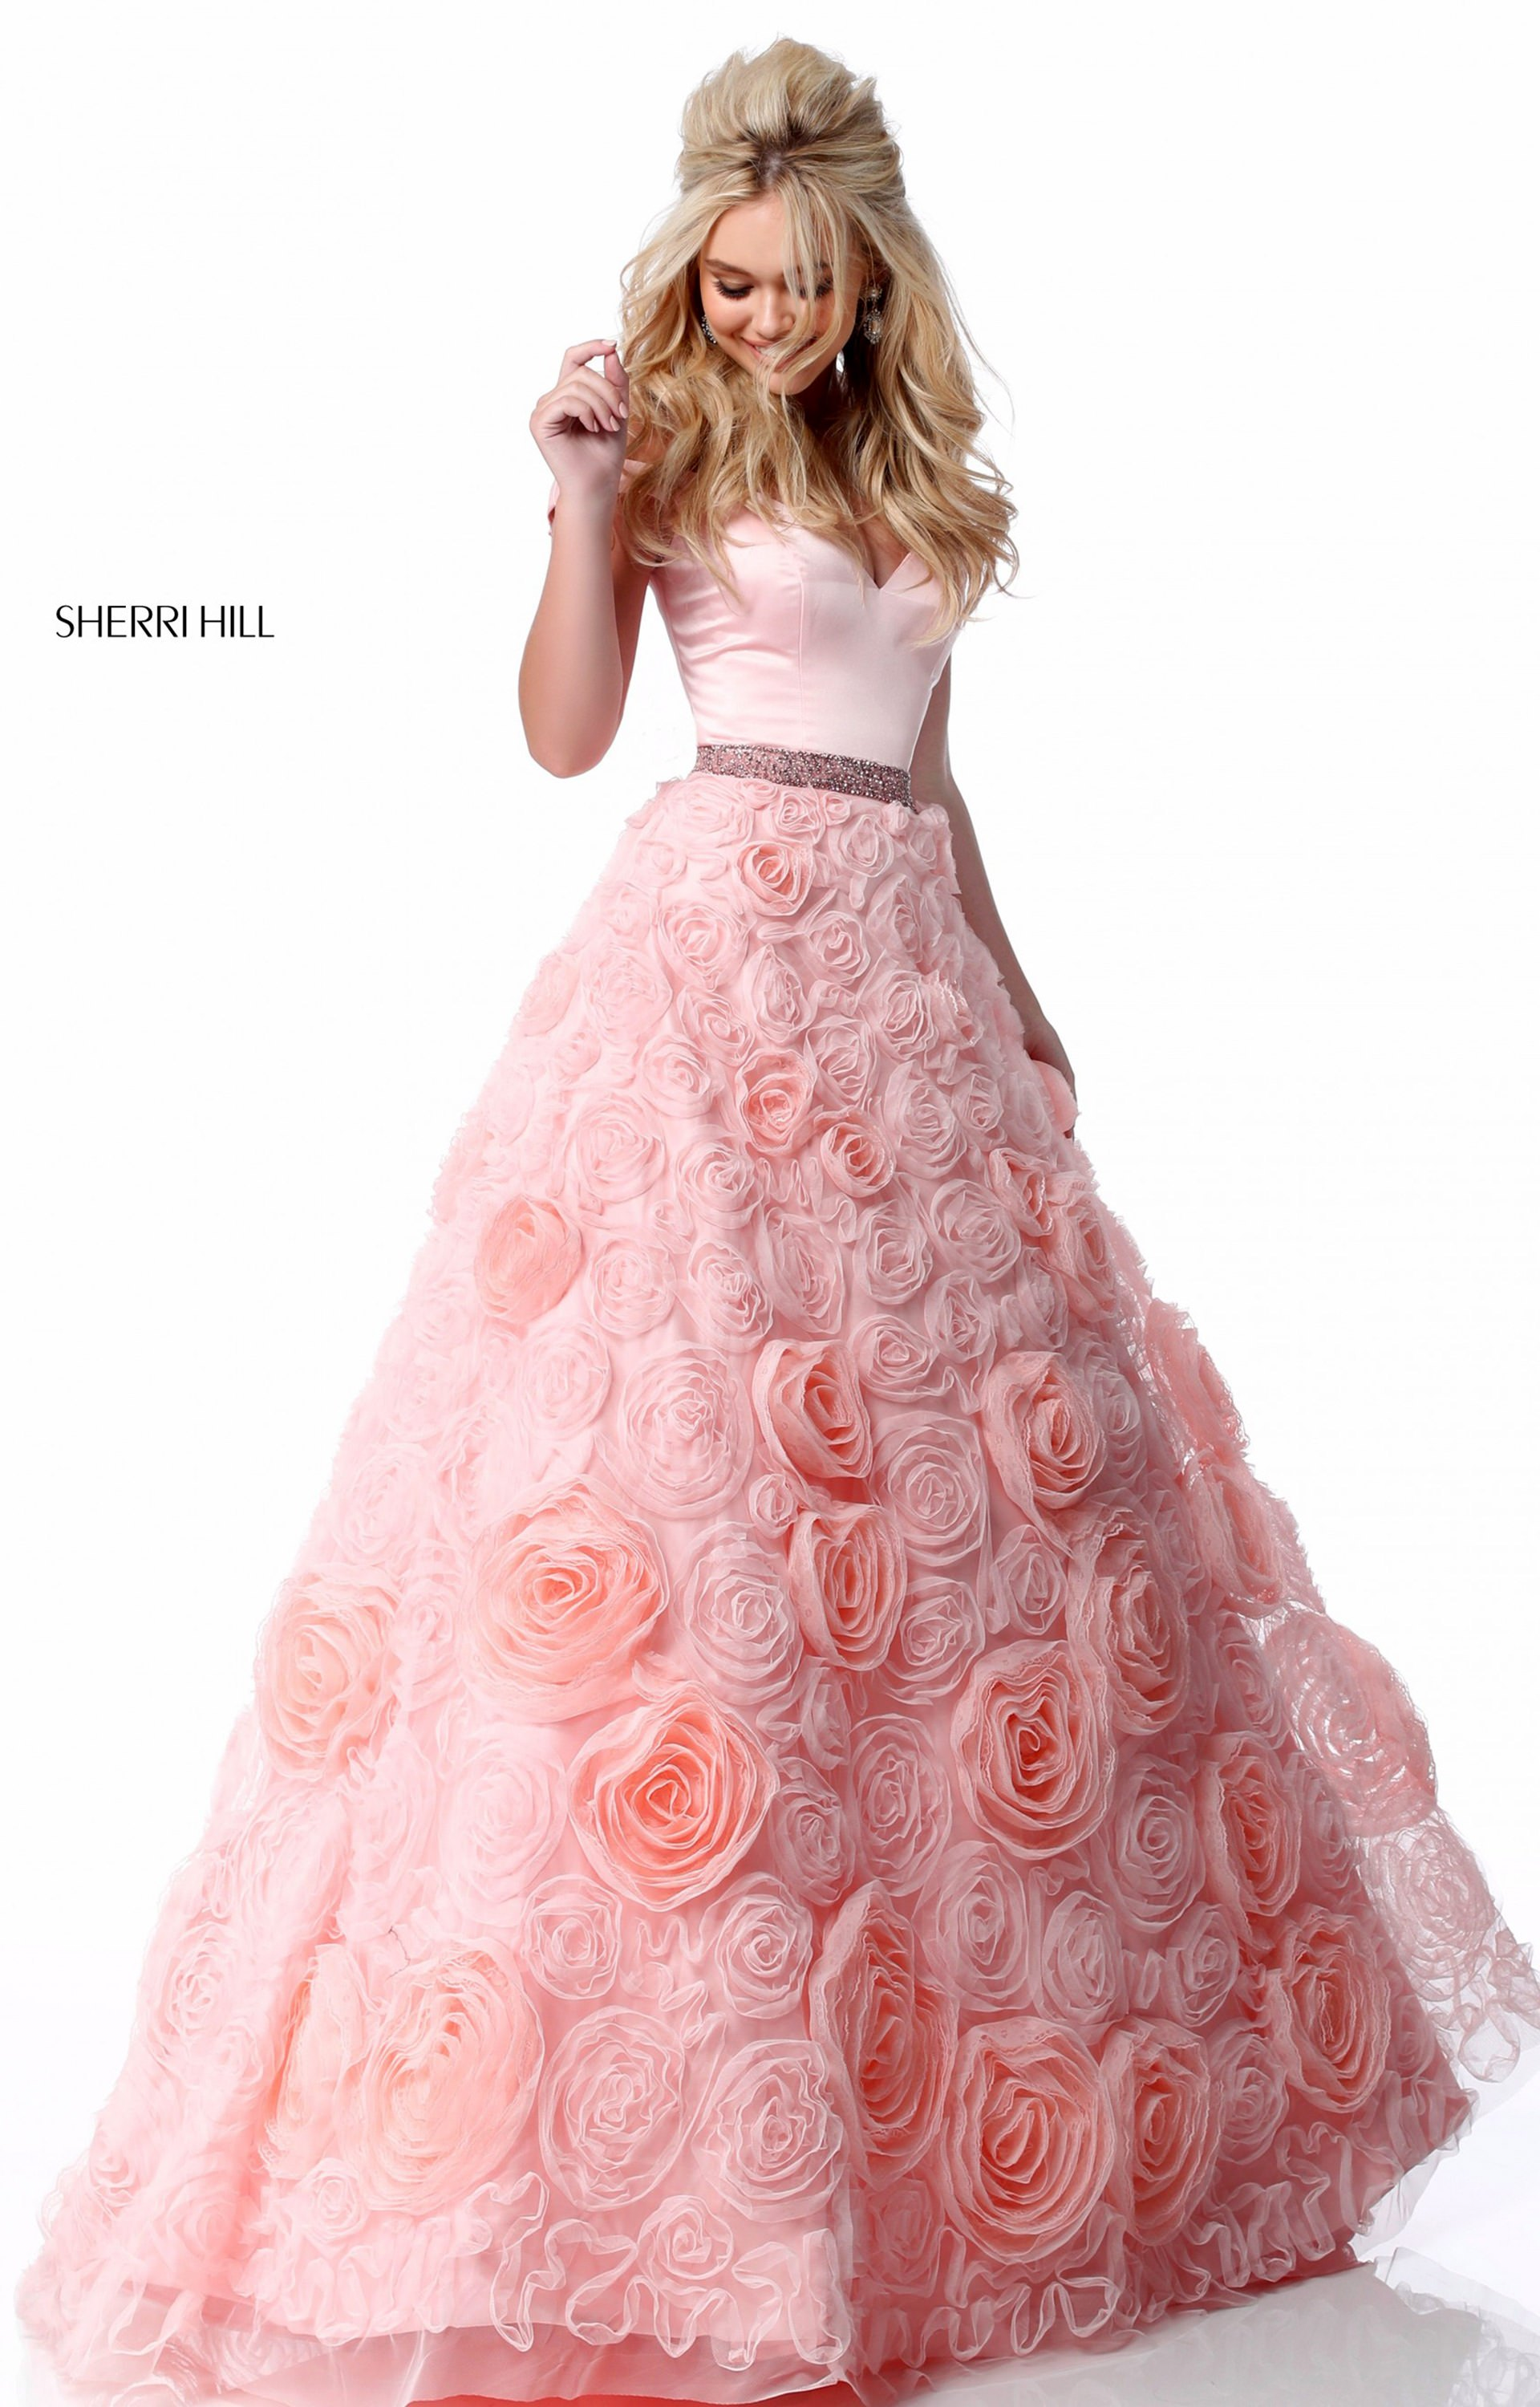 Sherri Hill 51885 - Off the Shoulder Rosette Ball Gown Prom Dress